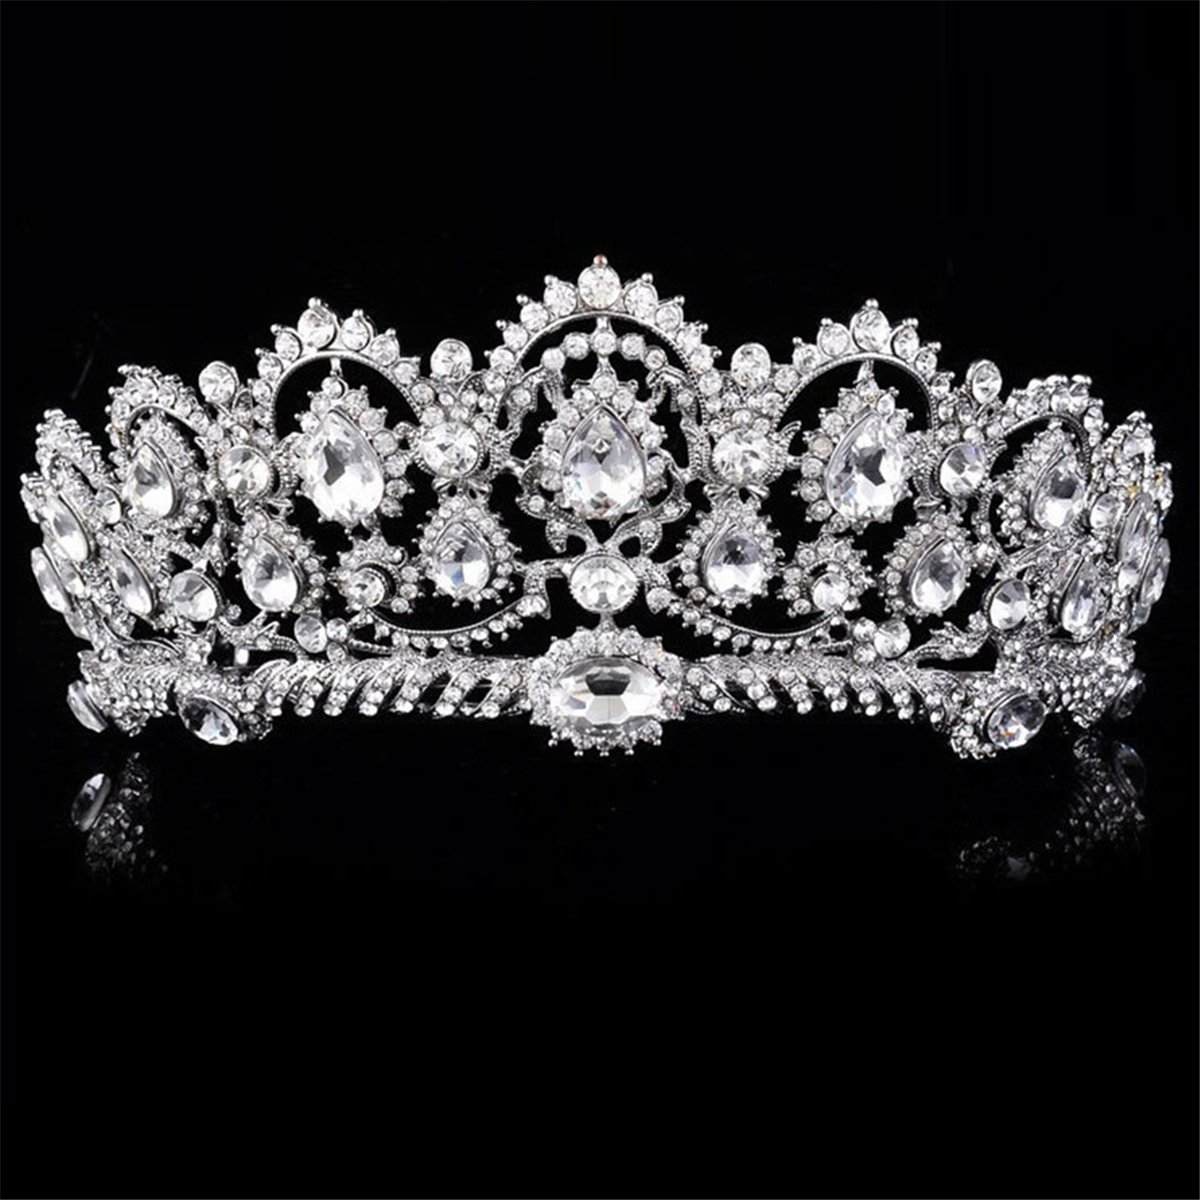 Amazon com crown tiara prom queen crown quinceanera pageant crowns princess crown rhinestone crystal bridal crowns tiaras crown and tiara for girls